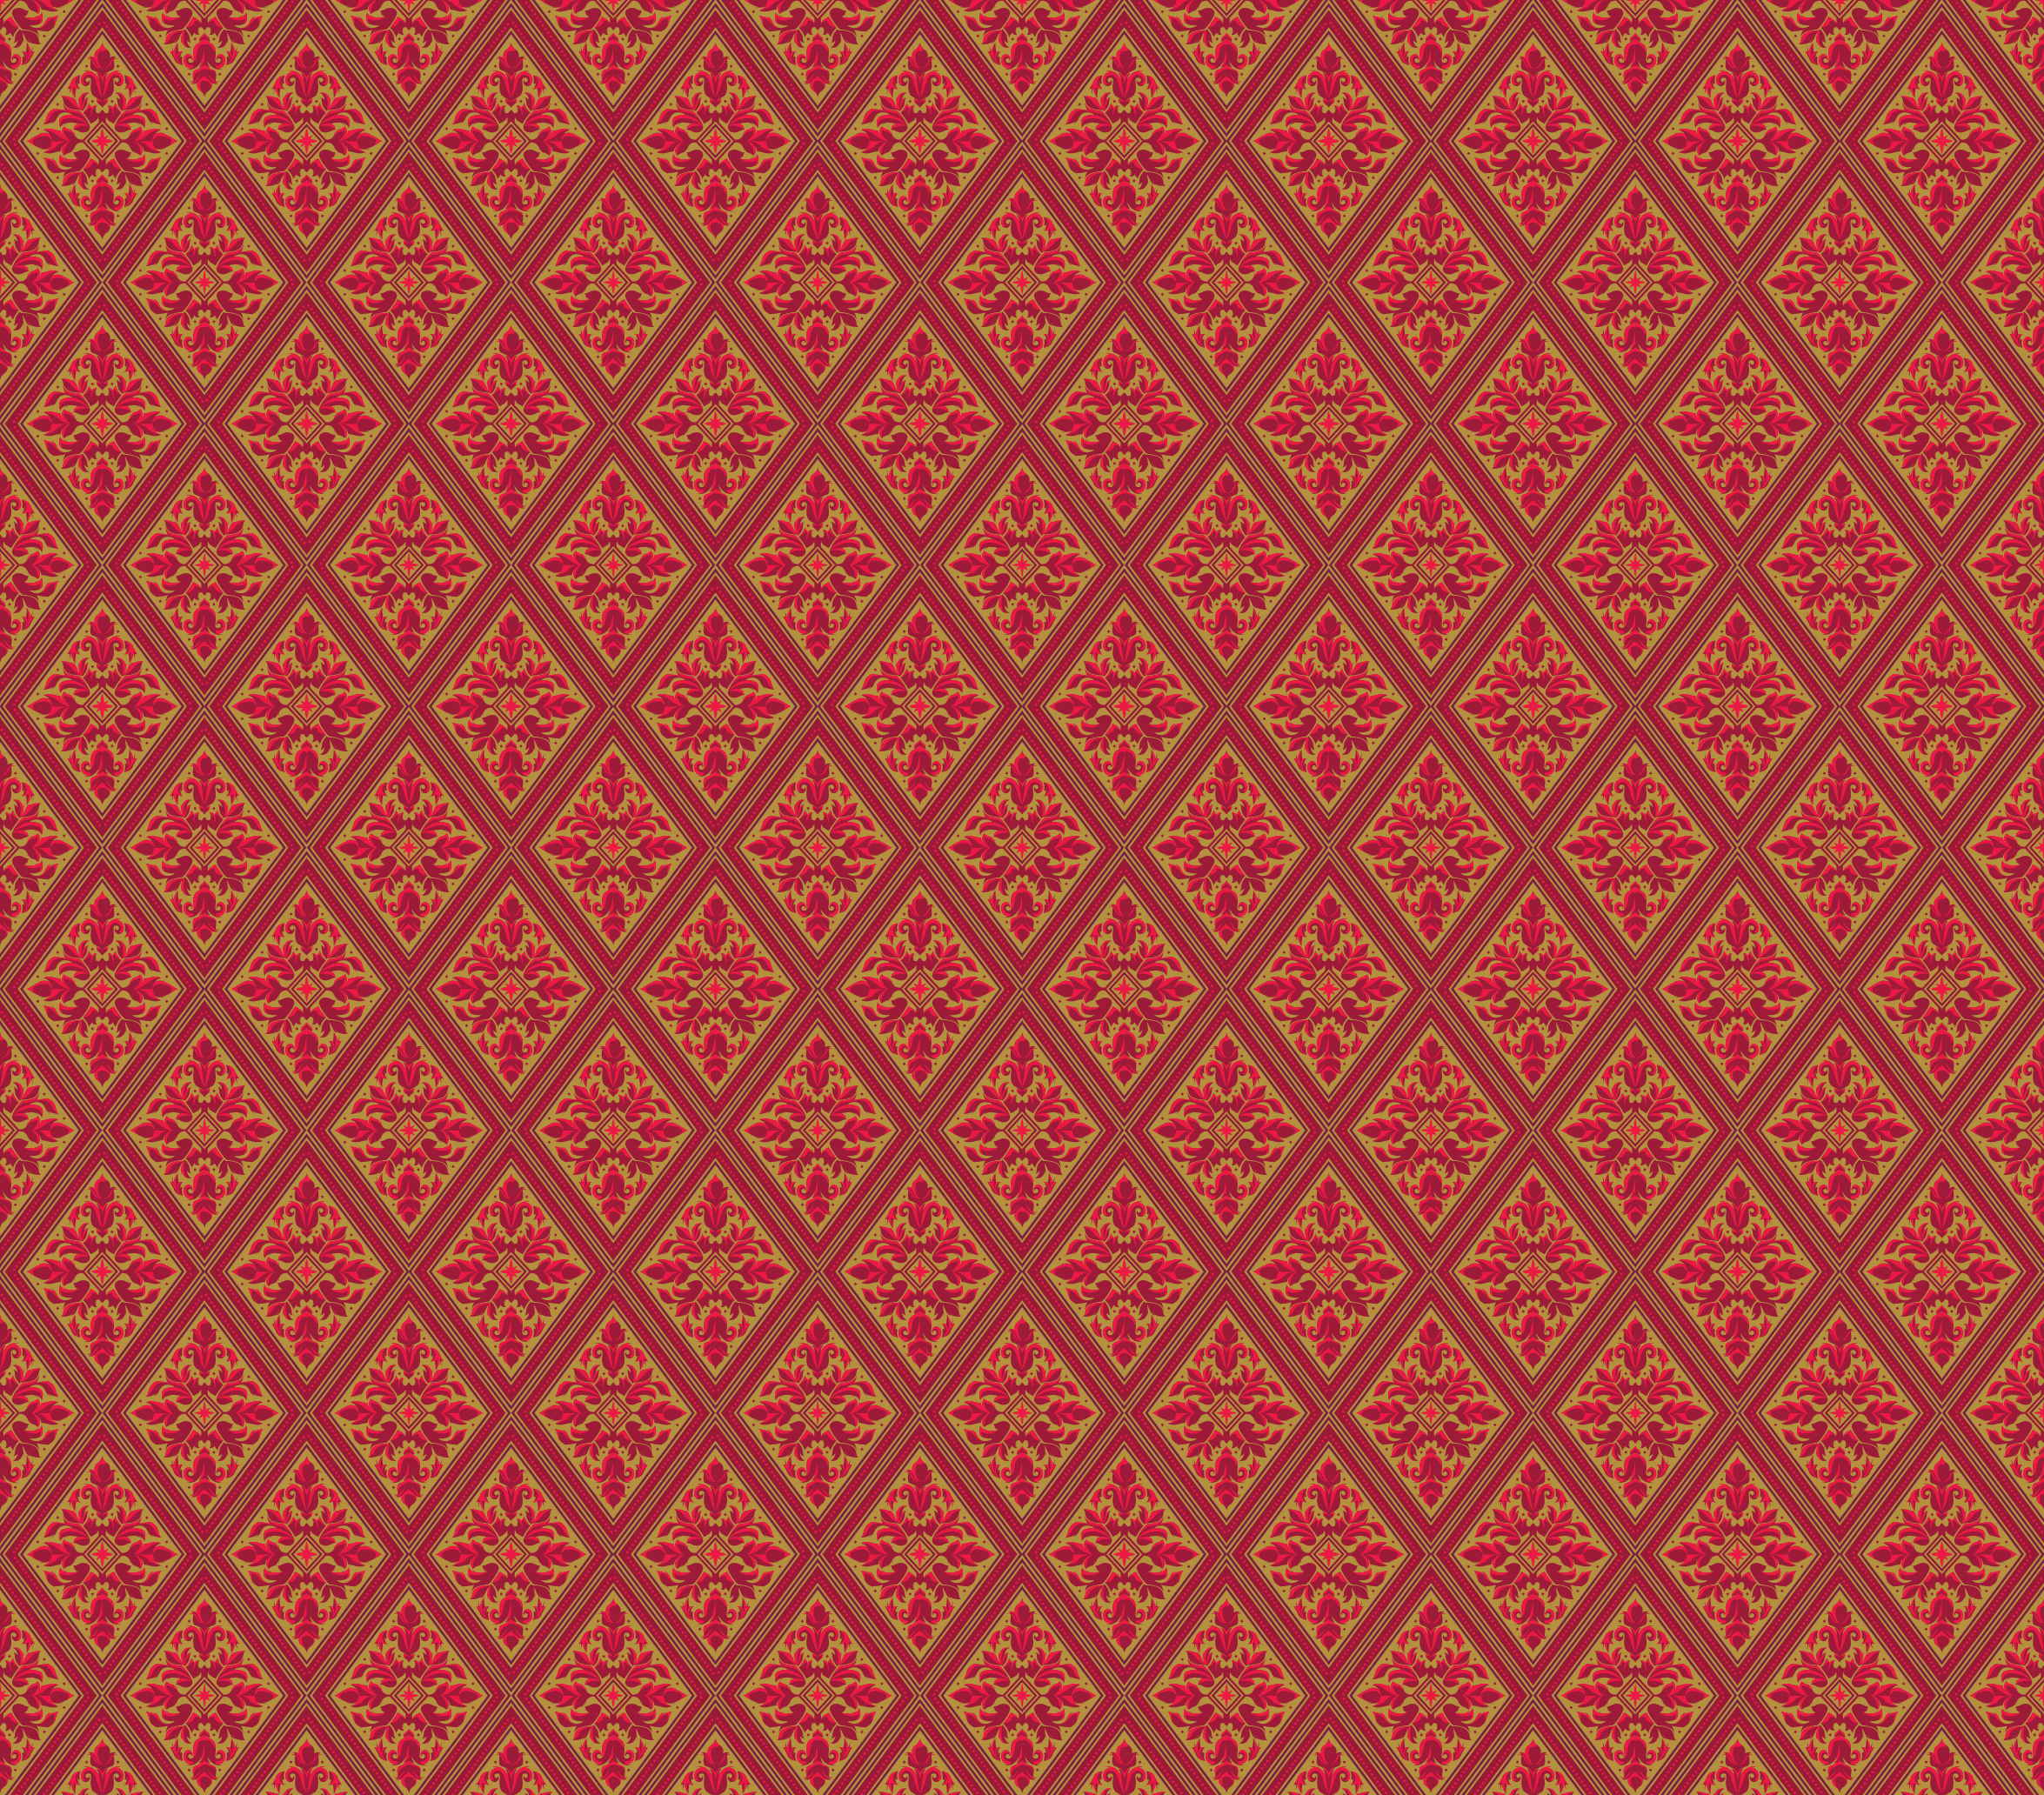 Royal rug seamless pattern